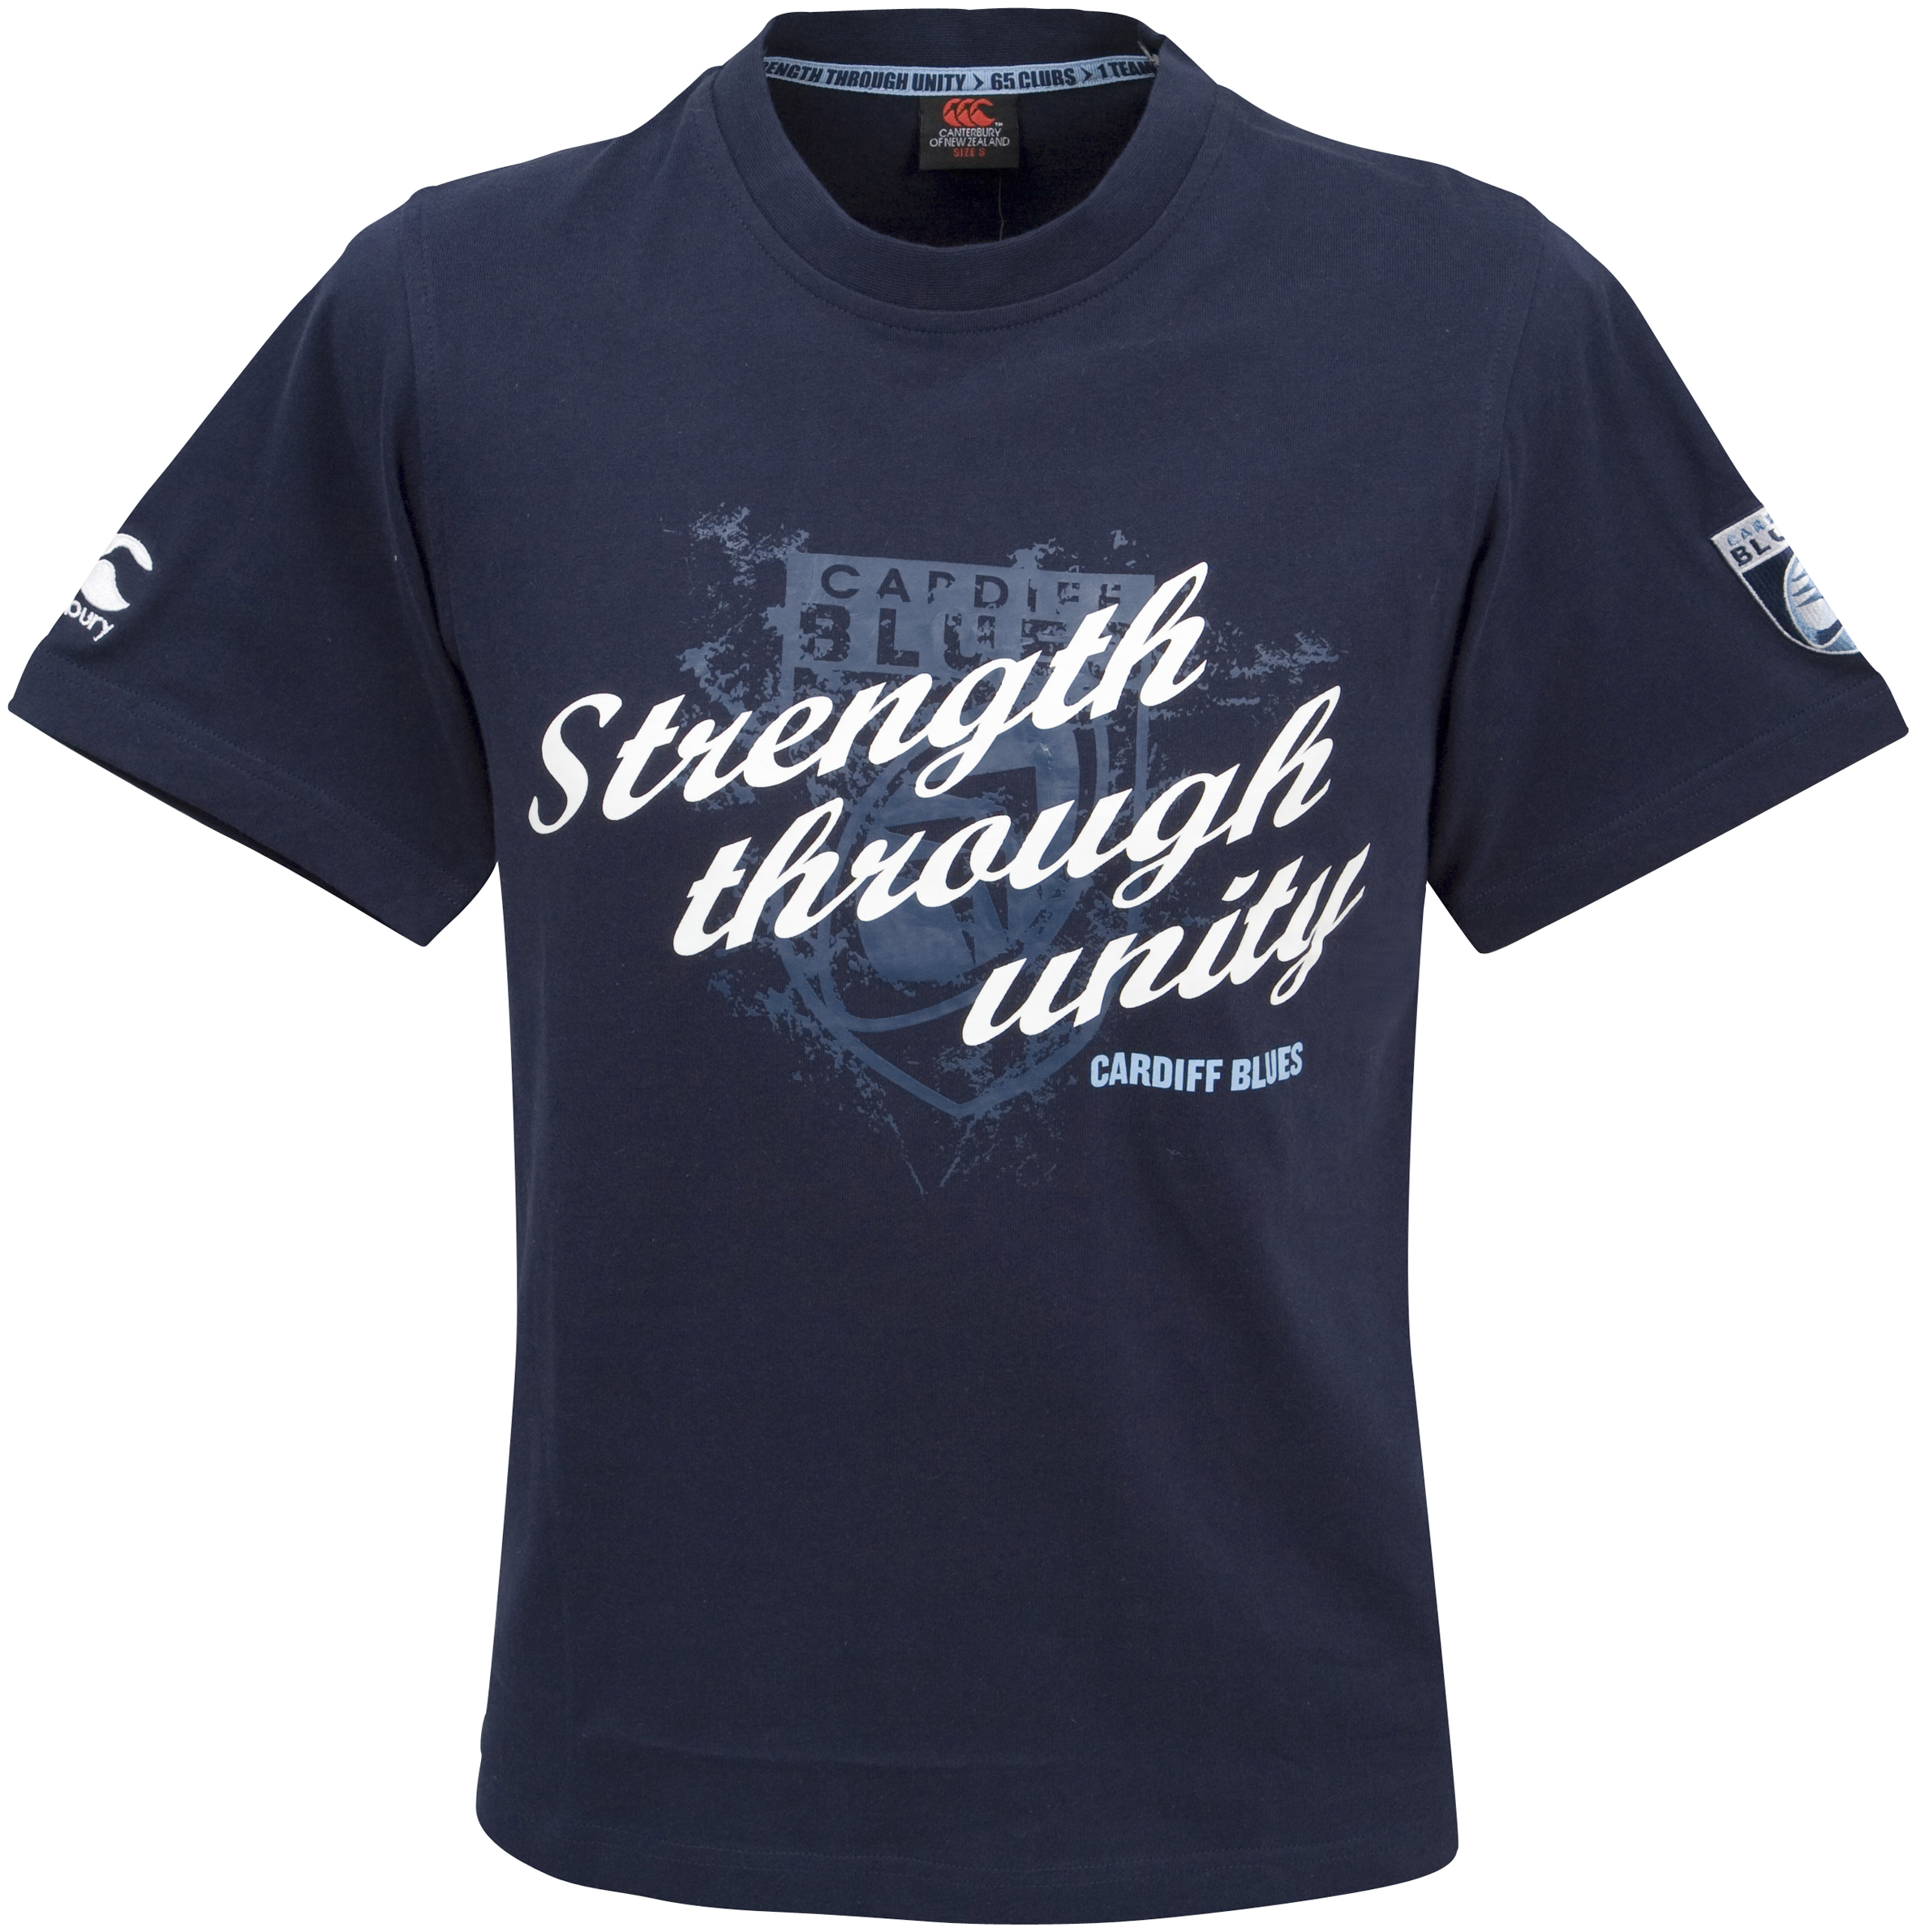 Cardiff Blues Graphic T-Shirt - Navy